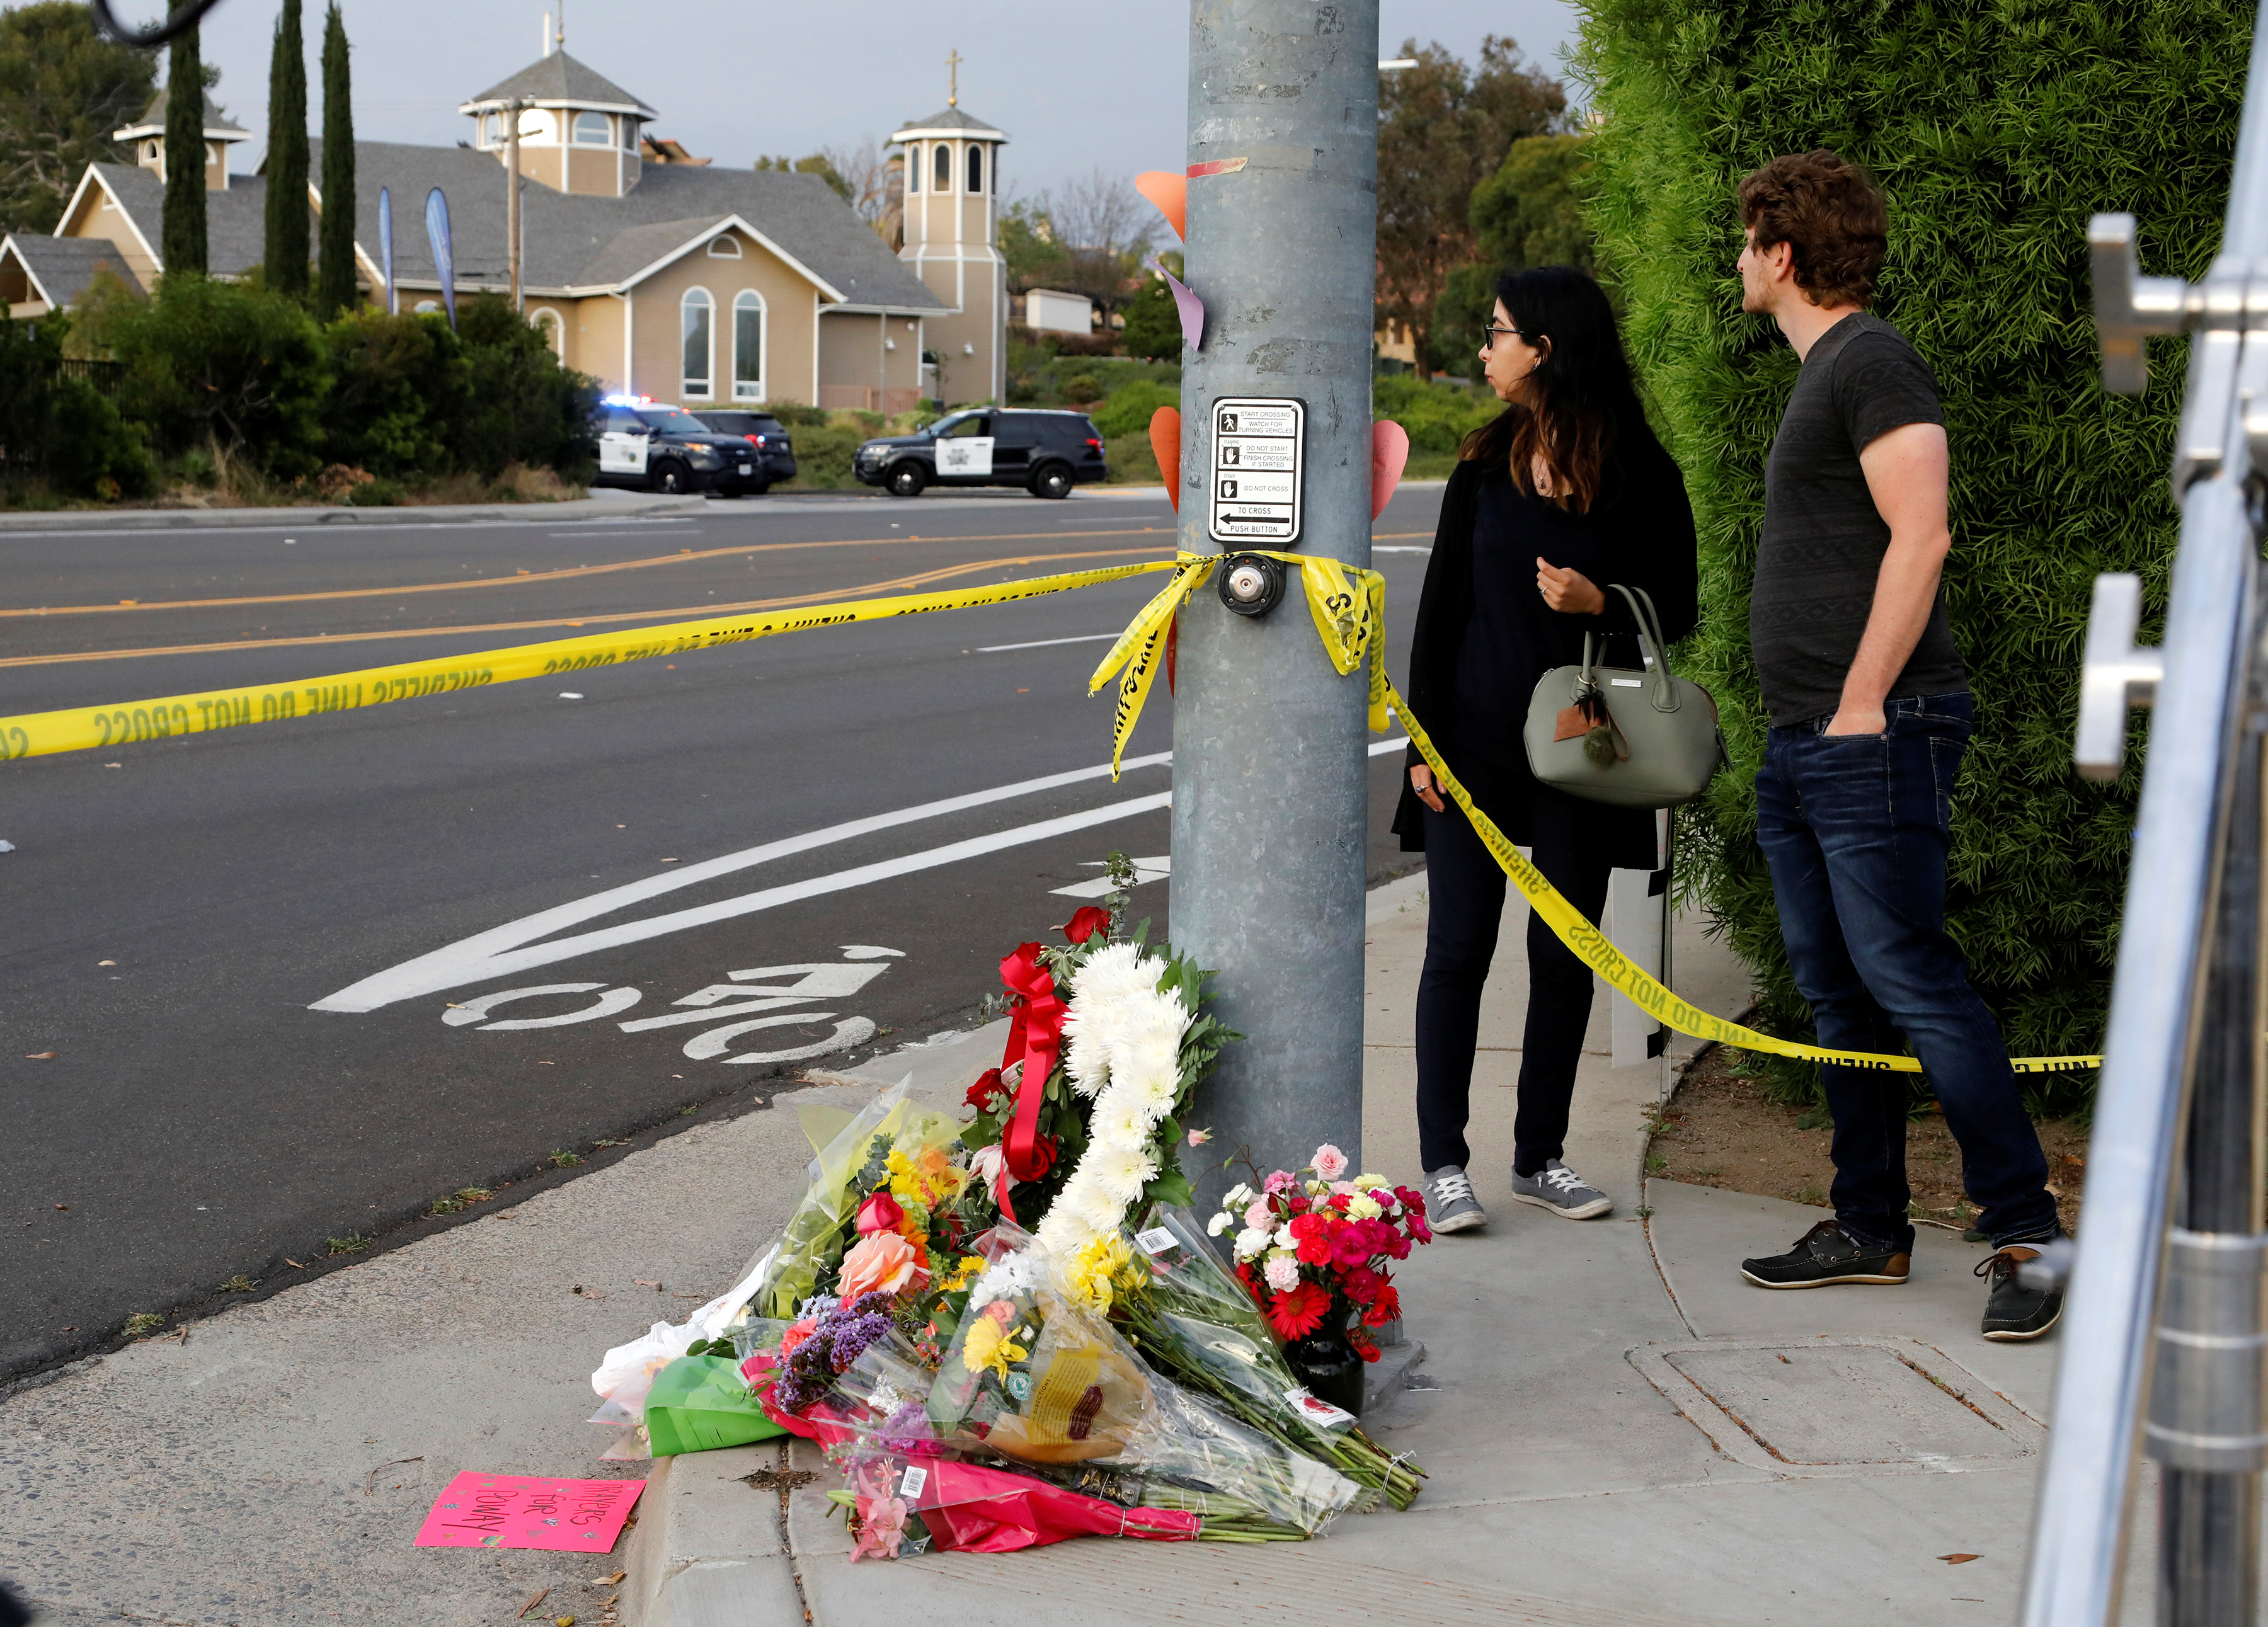 A makeshift memorial is placed by a light pole a block away from a shooting incident where one person was killed at the Congregation Chabad synagogue in Poway, north of San Diego, California, U.S. April 27, 2019. REUTERS/John Gastaldo